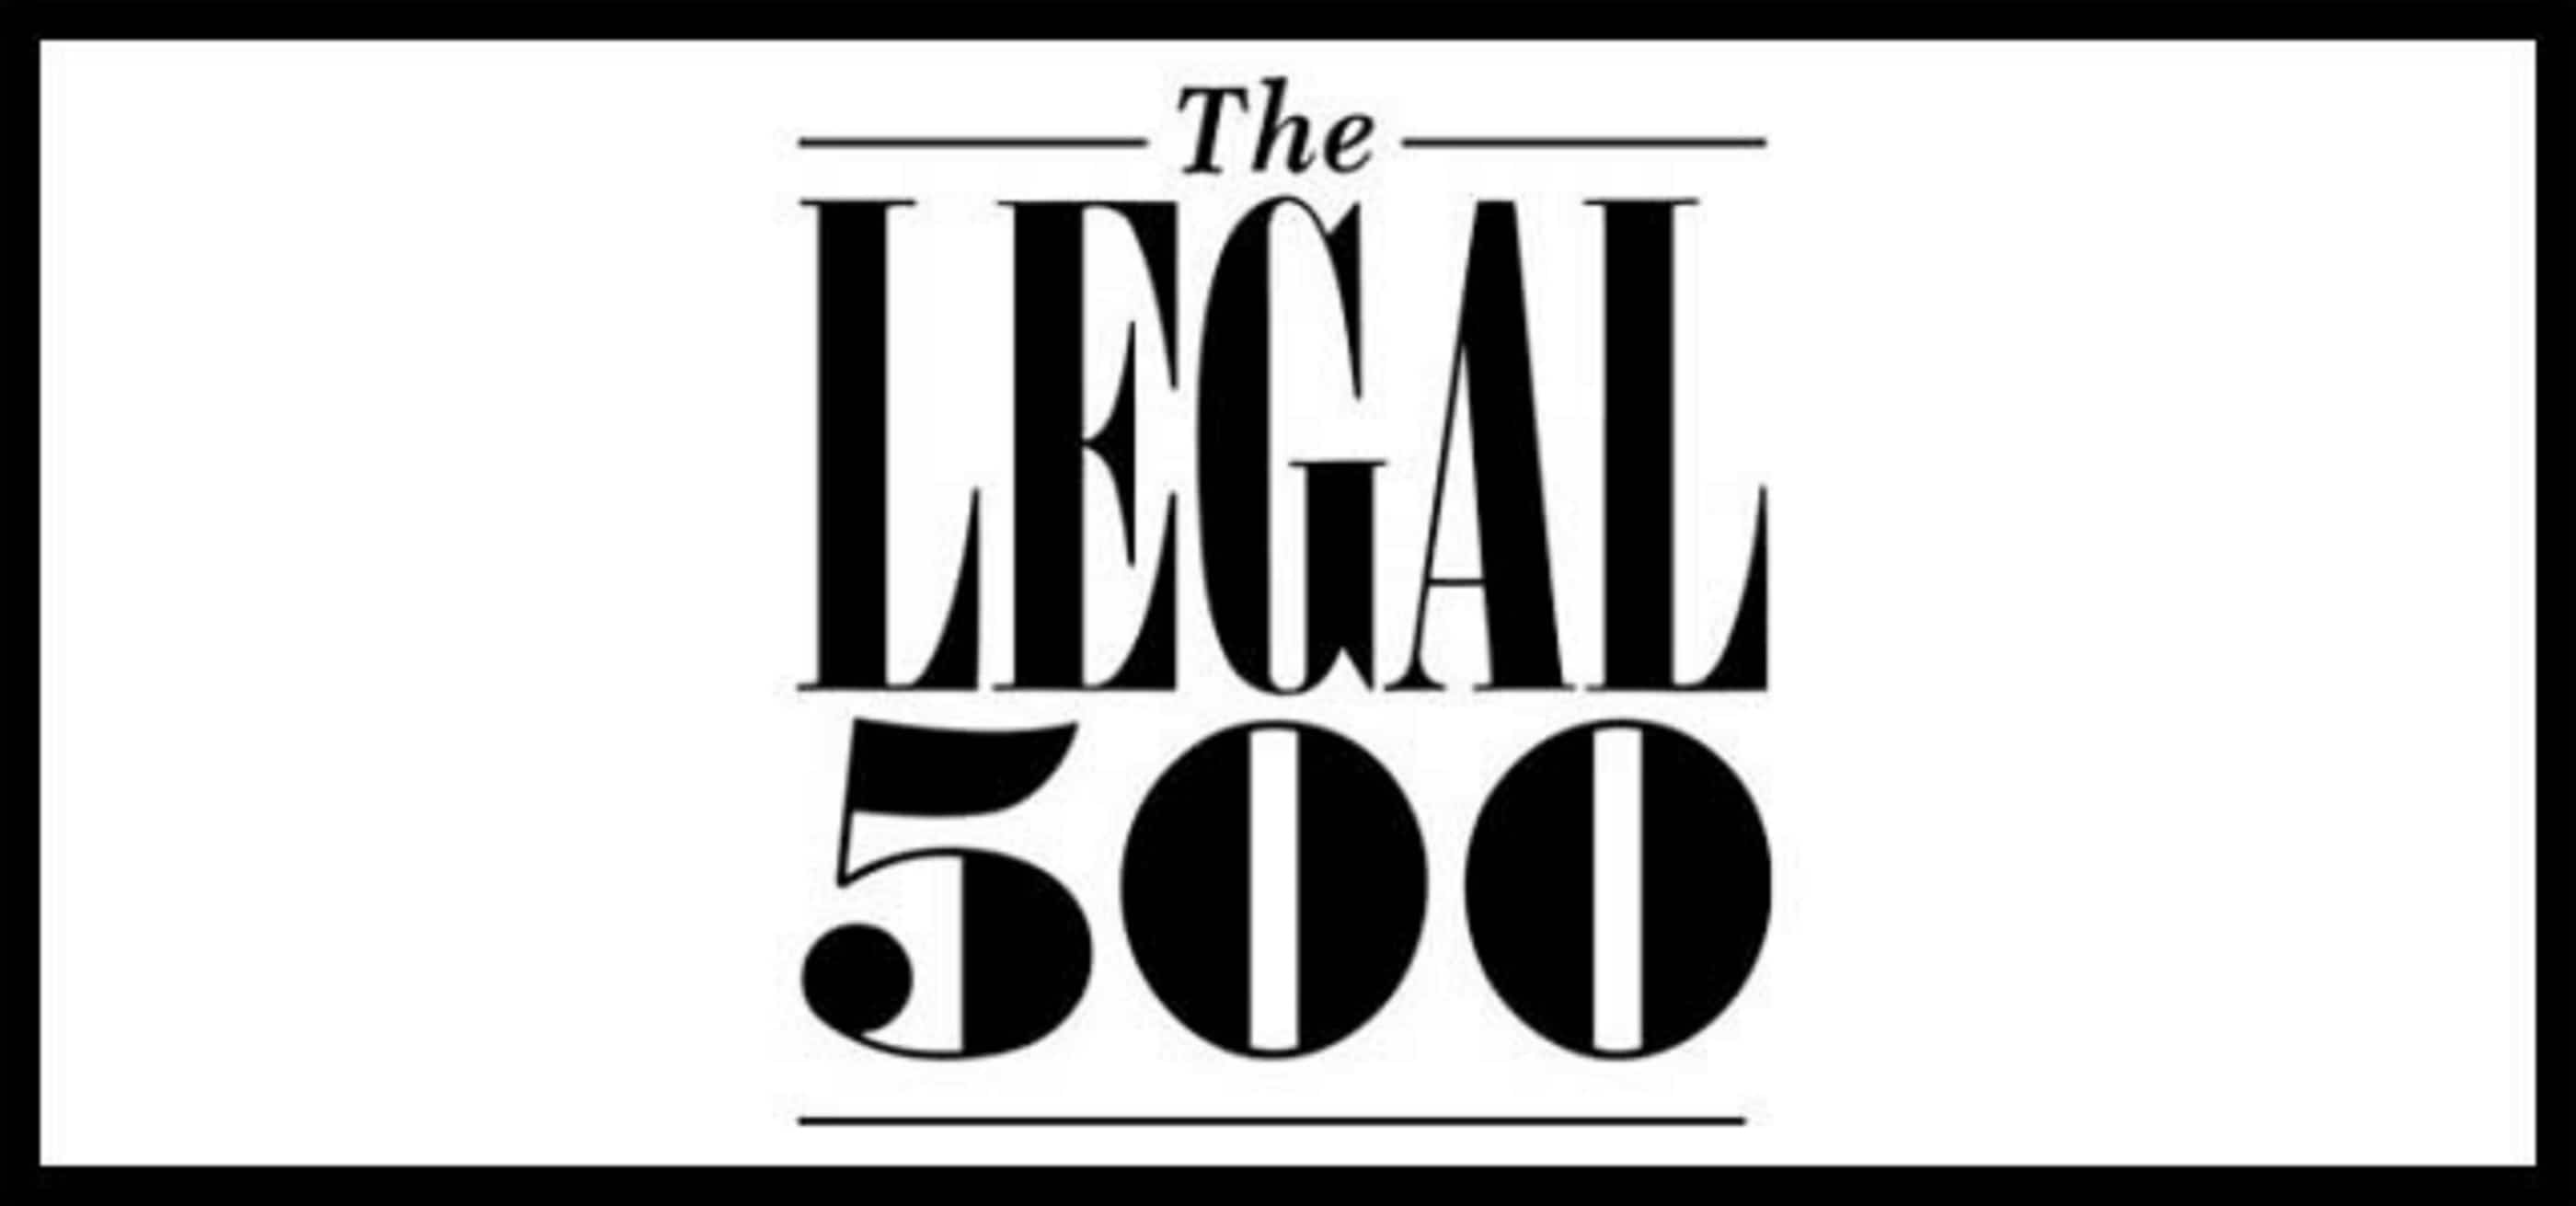 Why We Made the Legal 500 Family Law Rankings